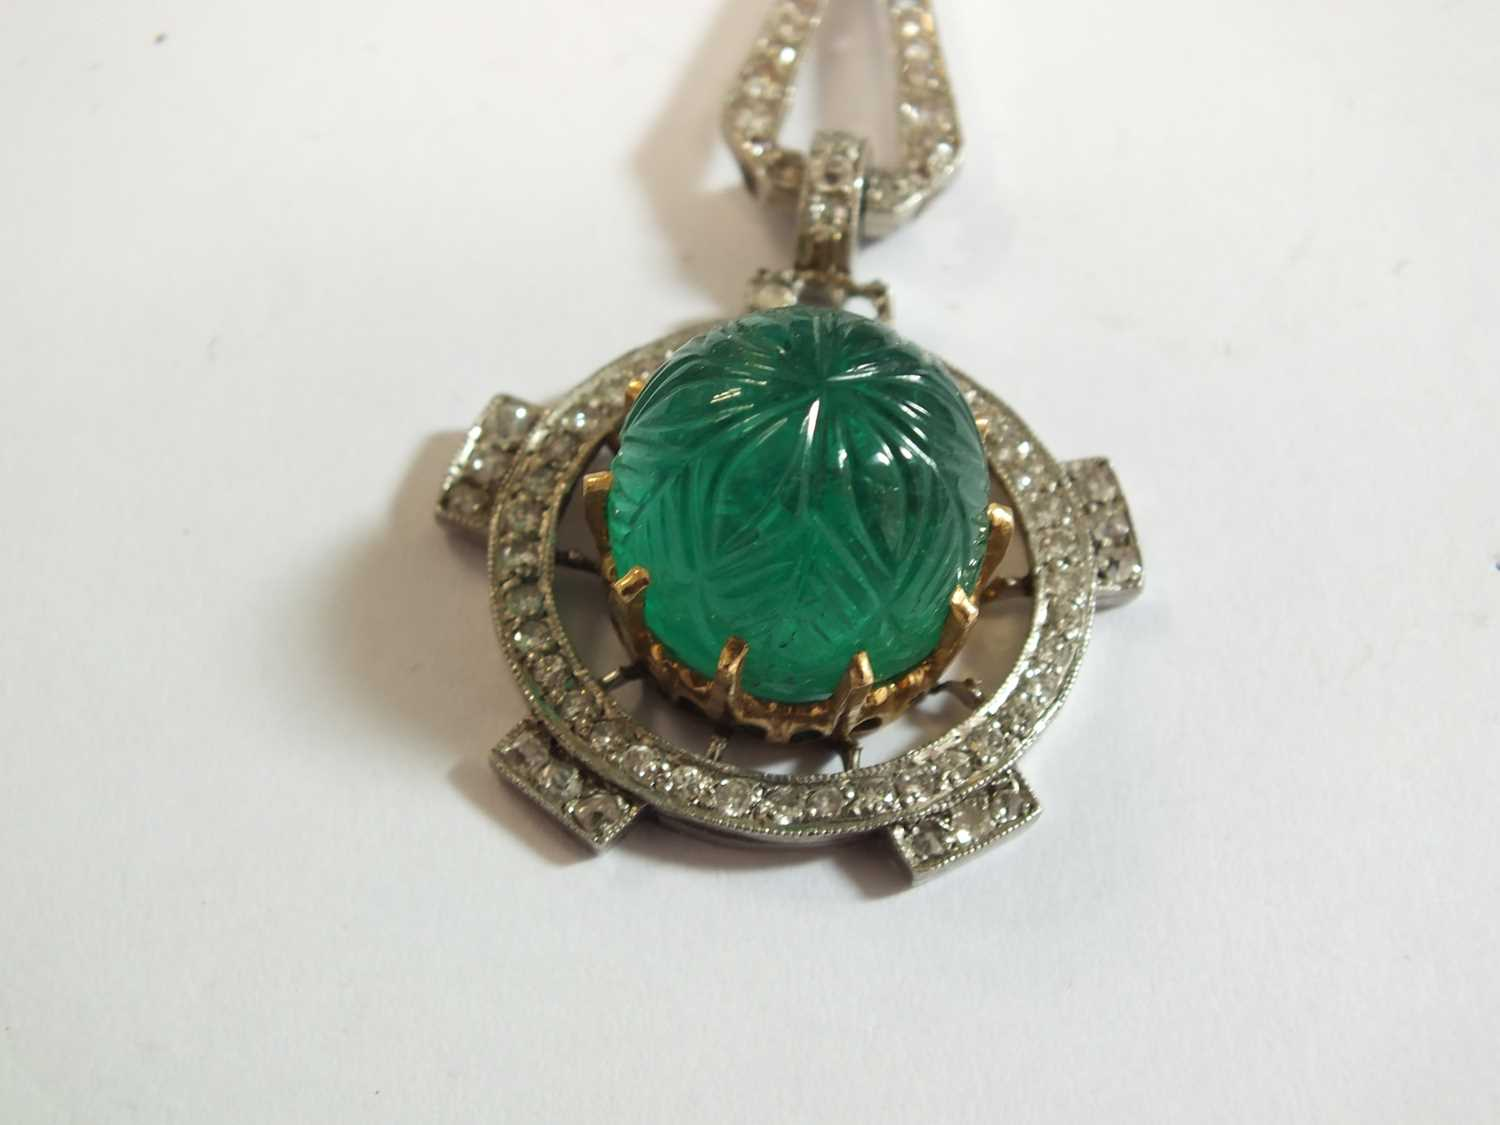 An Art Deco emerald and diamond pendant on chain - Image 3 of 14